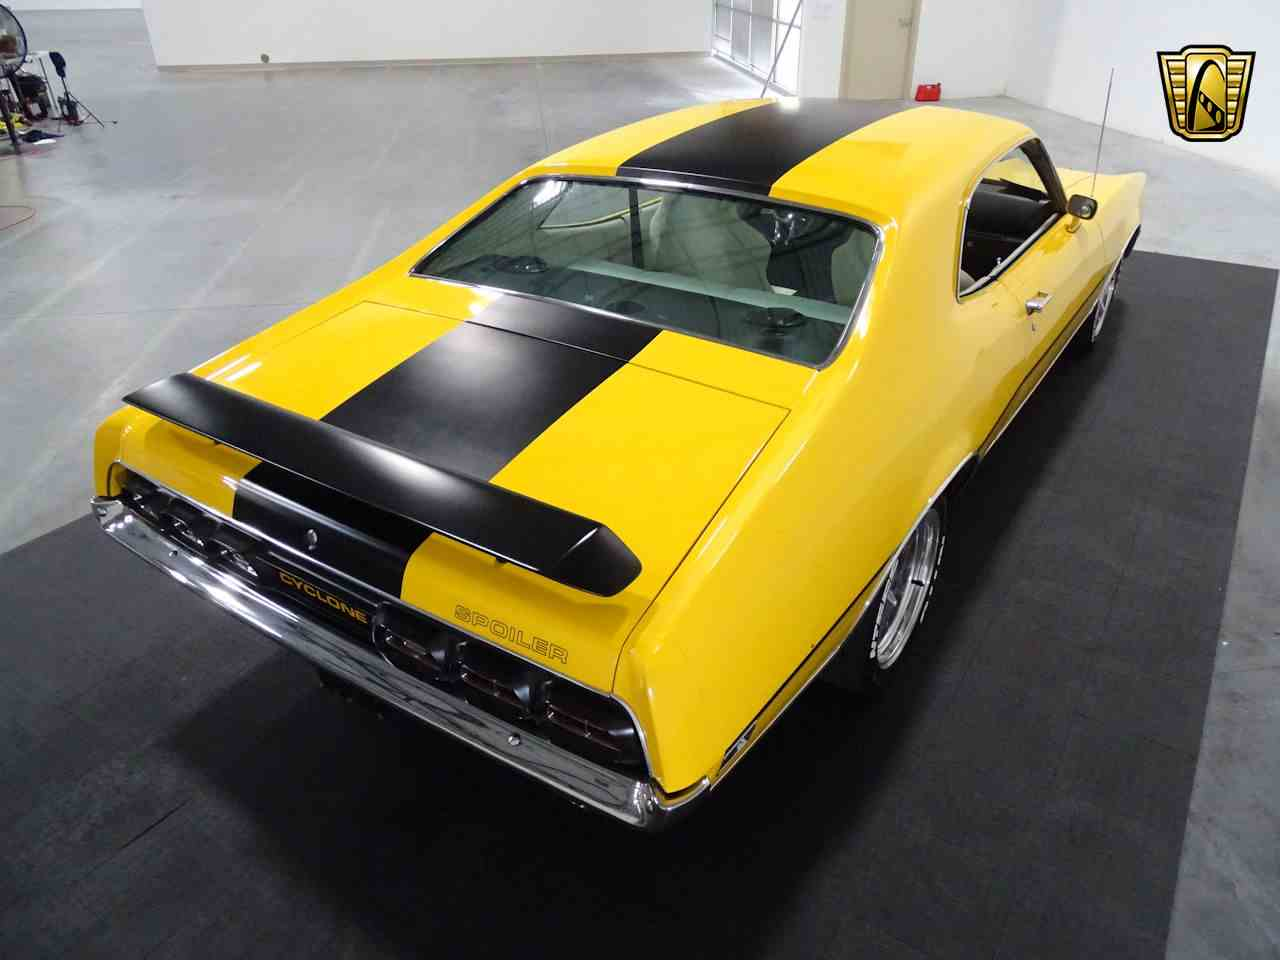 Large Picture of Classic '70 Mercury Cyclone located in Houston Texas - $83,000.00 Offered by Gateway Classic Cars - Houston - MA58